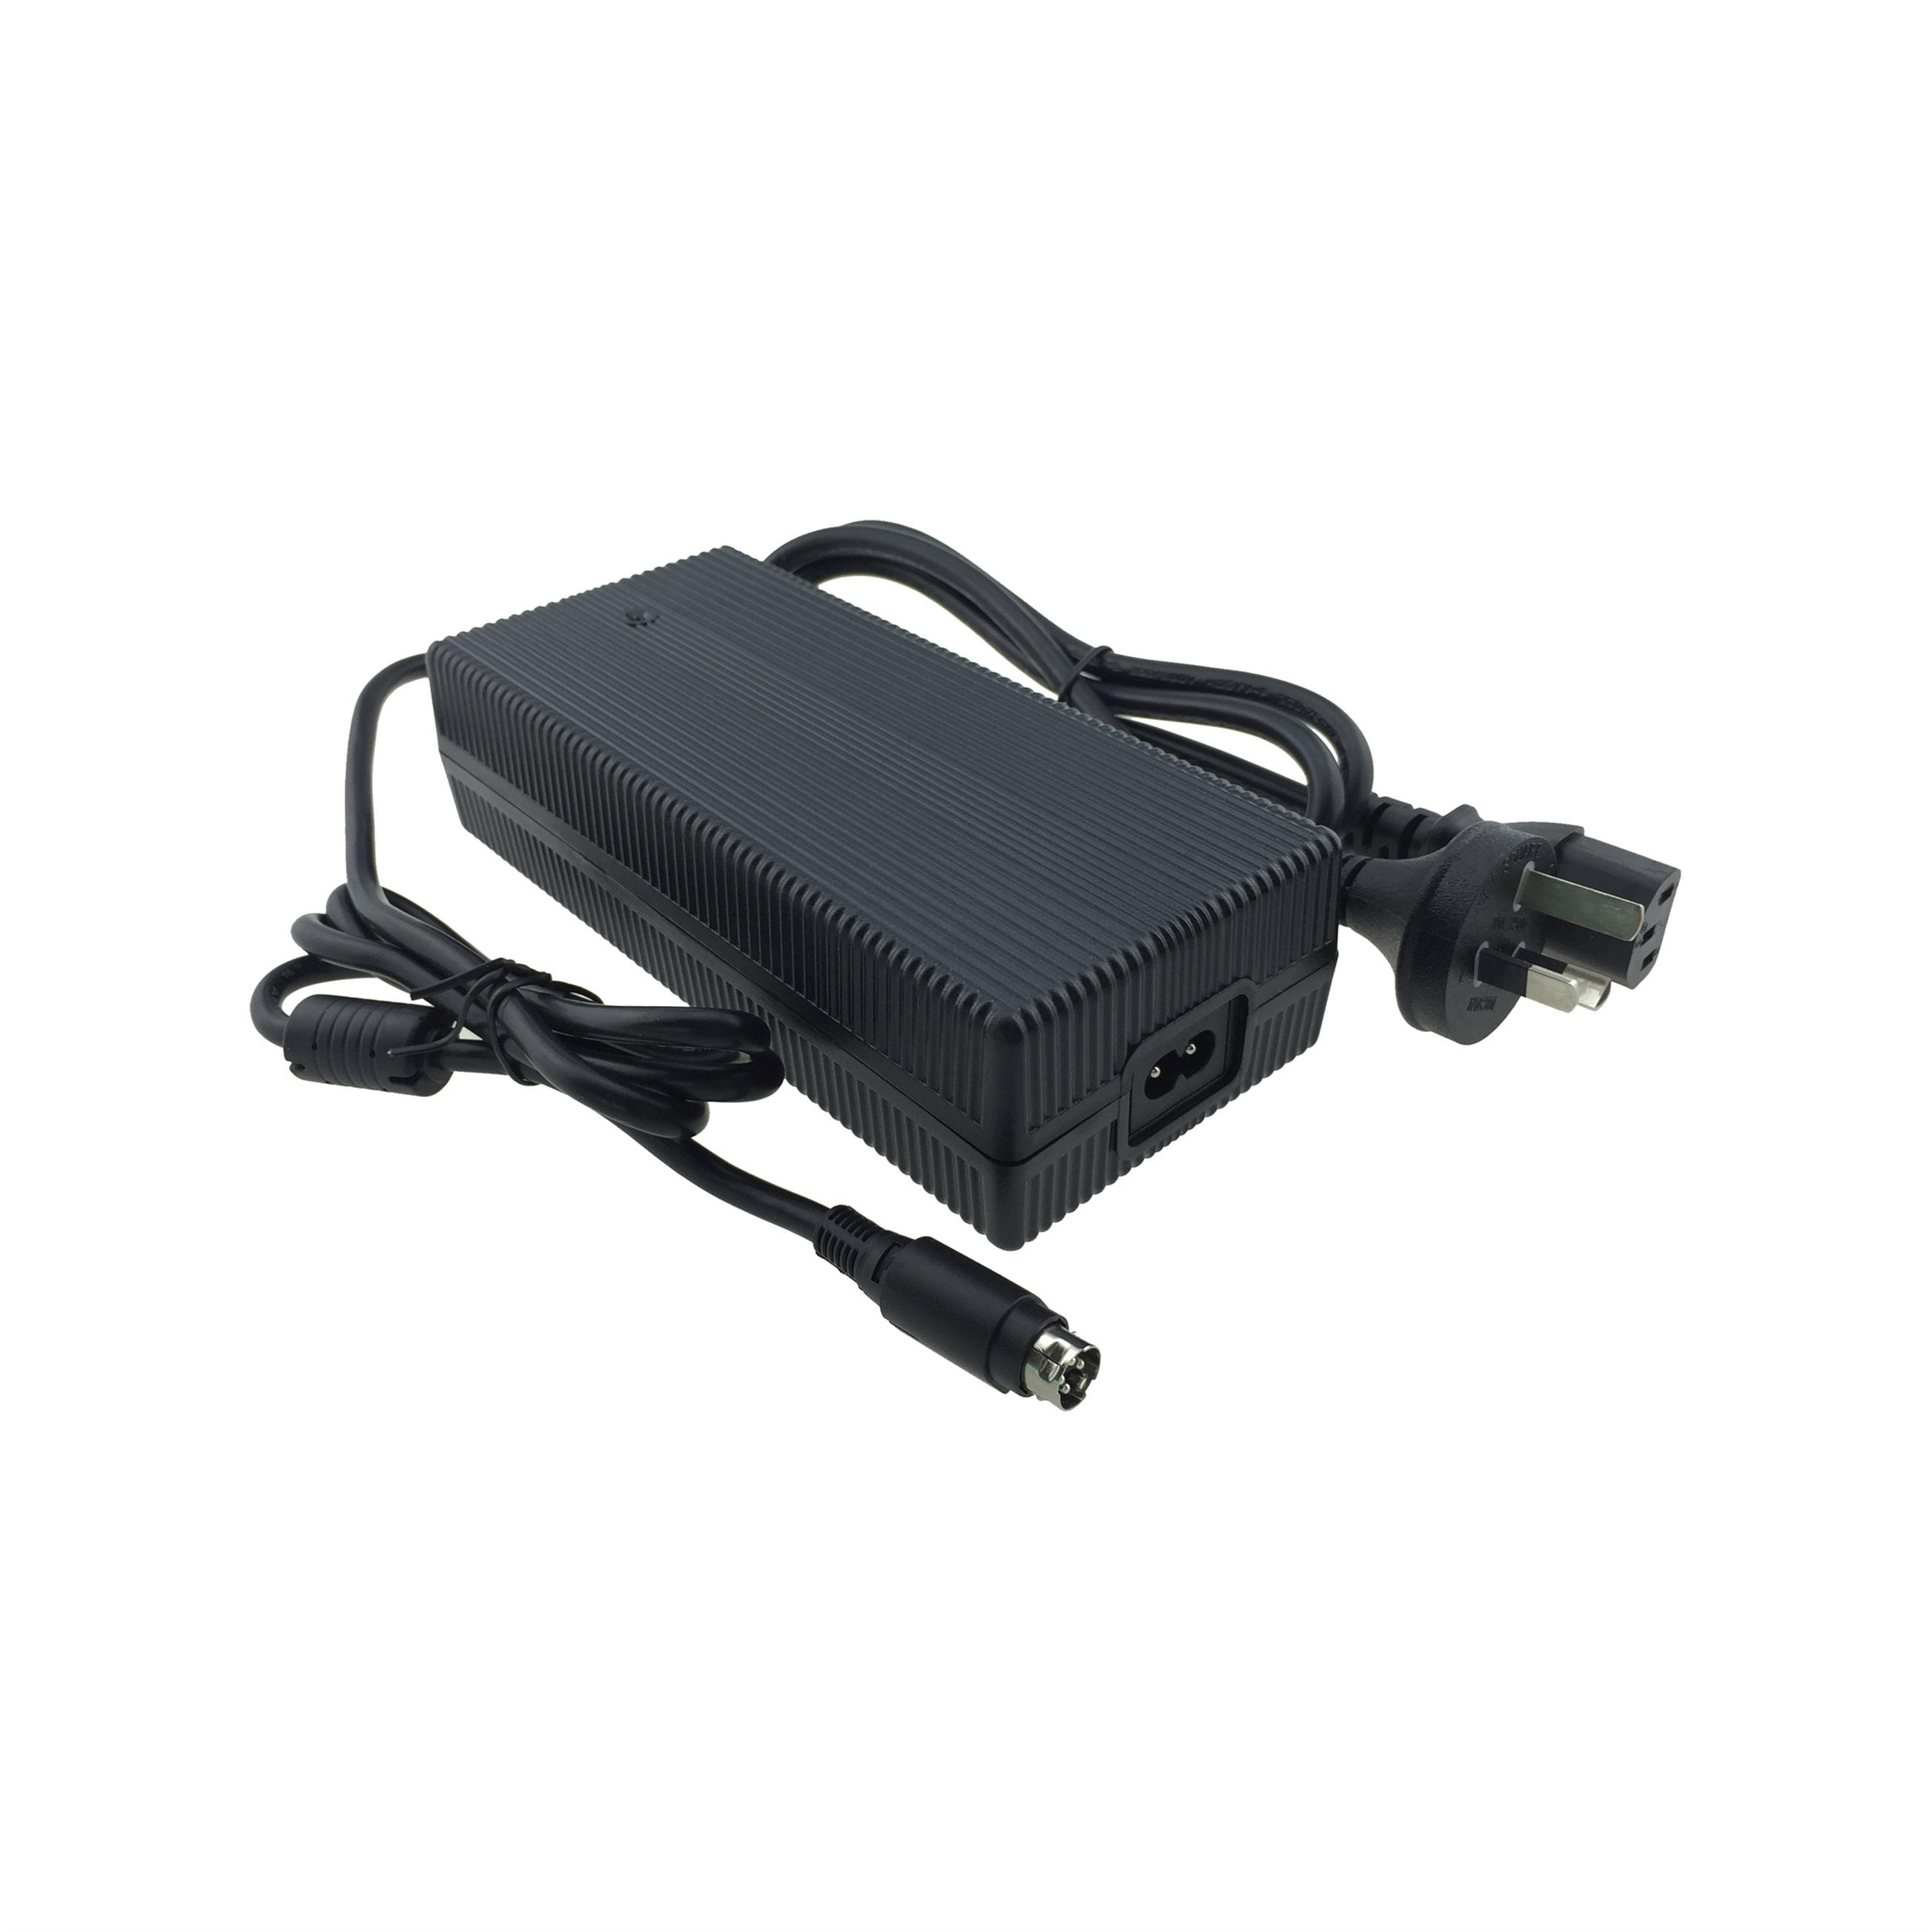 FY1209900 CC or CV mode 12v 10a power supply cctv power adapter